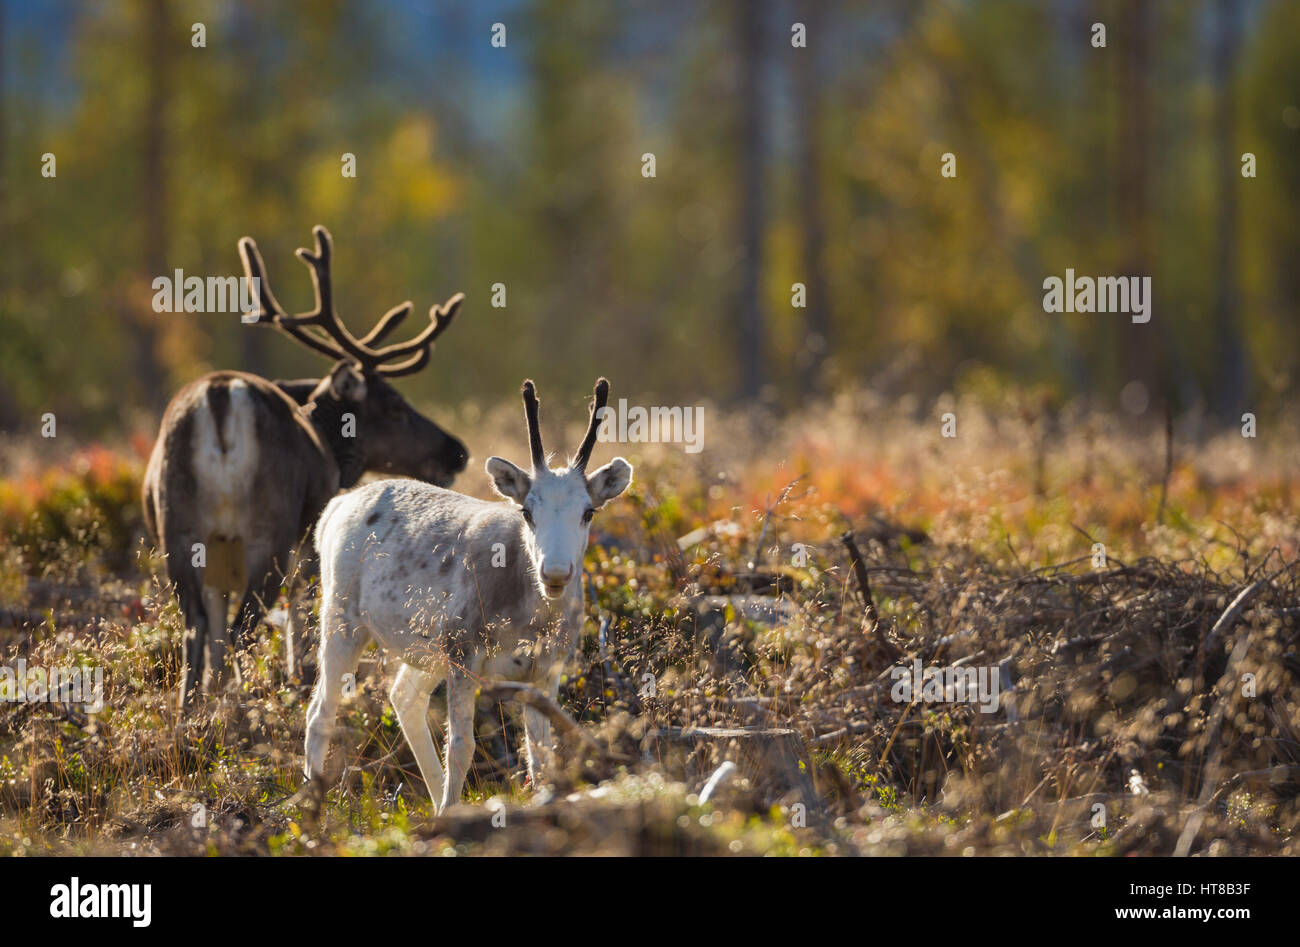 Two Reindeers in autumn season, one is looking in to the camera is a calf and is white, and the forest having autumn - Stock Image